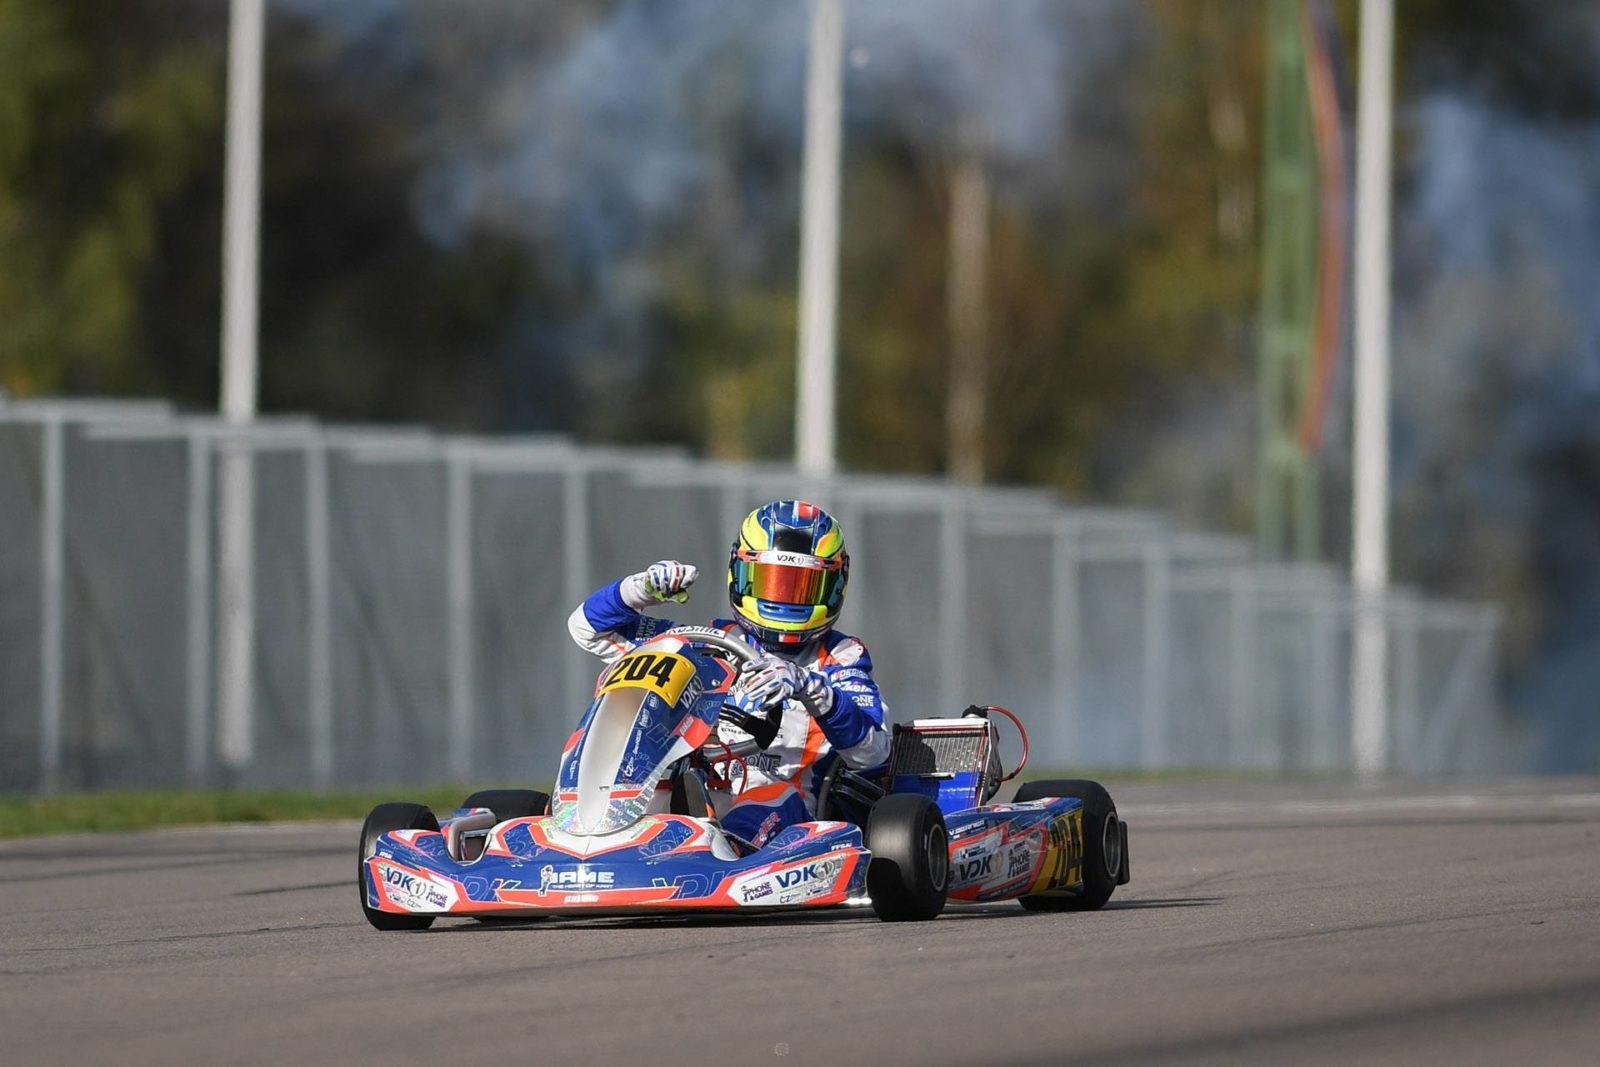 Victor Bernier pumps his arm as he cross the finish line at the 2018 FIA Karting World Junior Championship in Kristianstad, Sweden